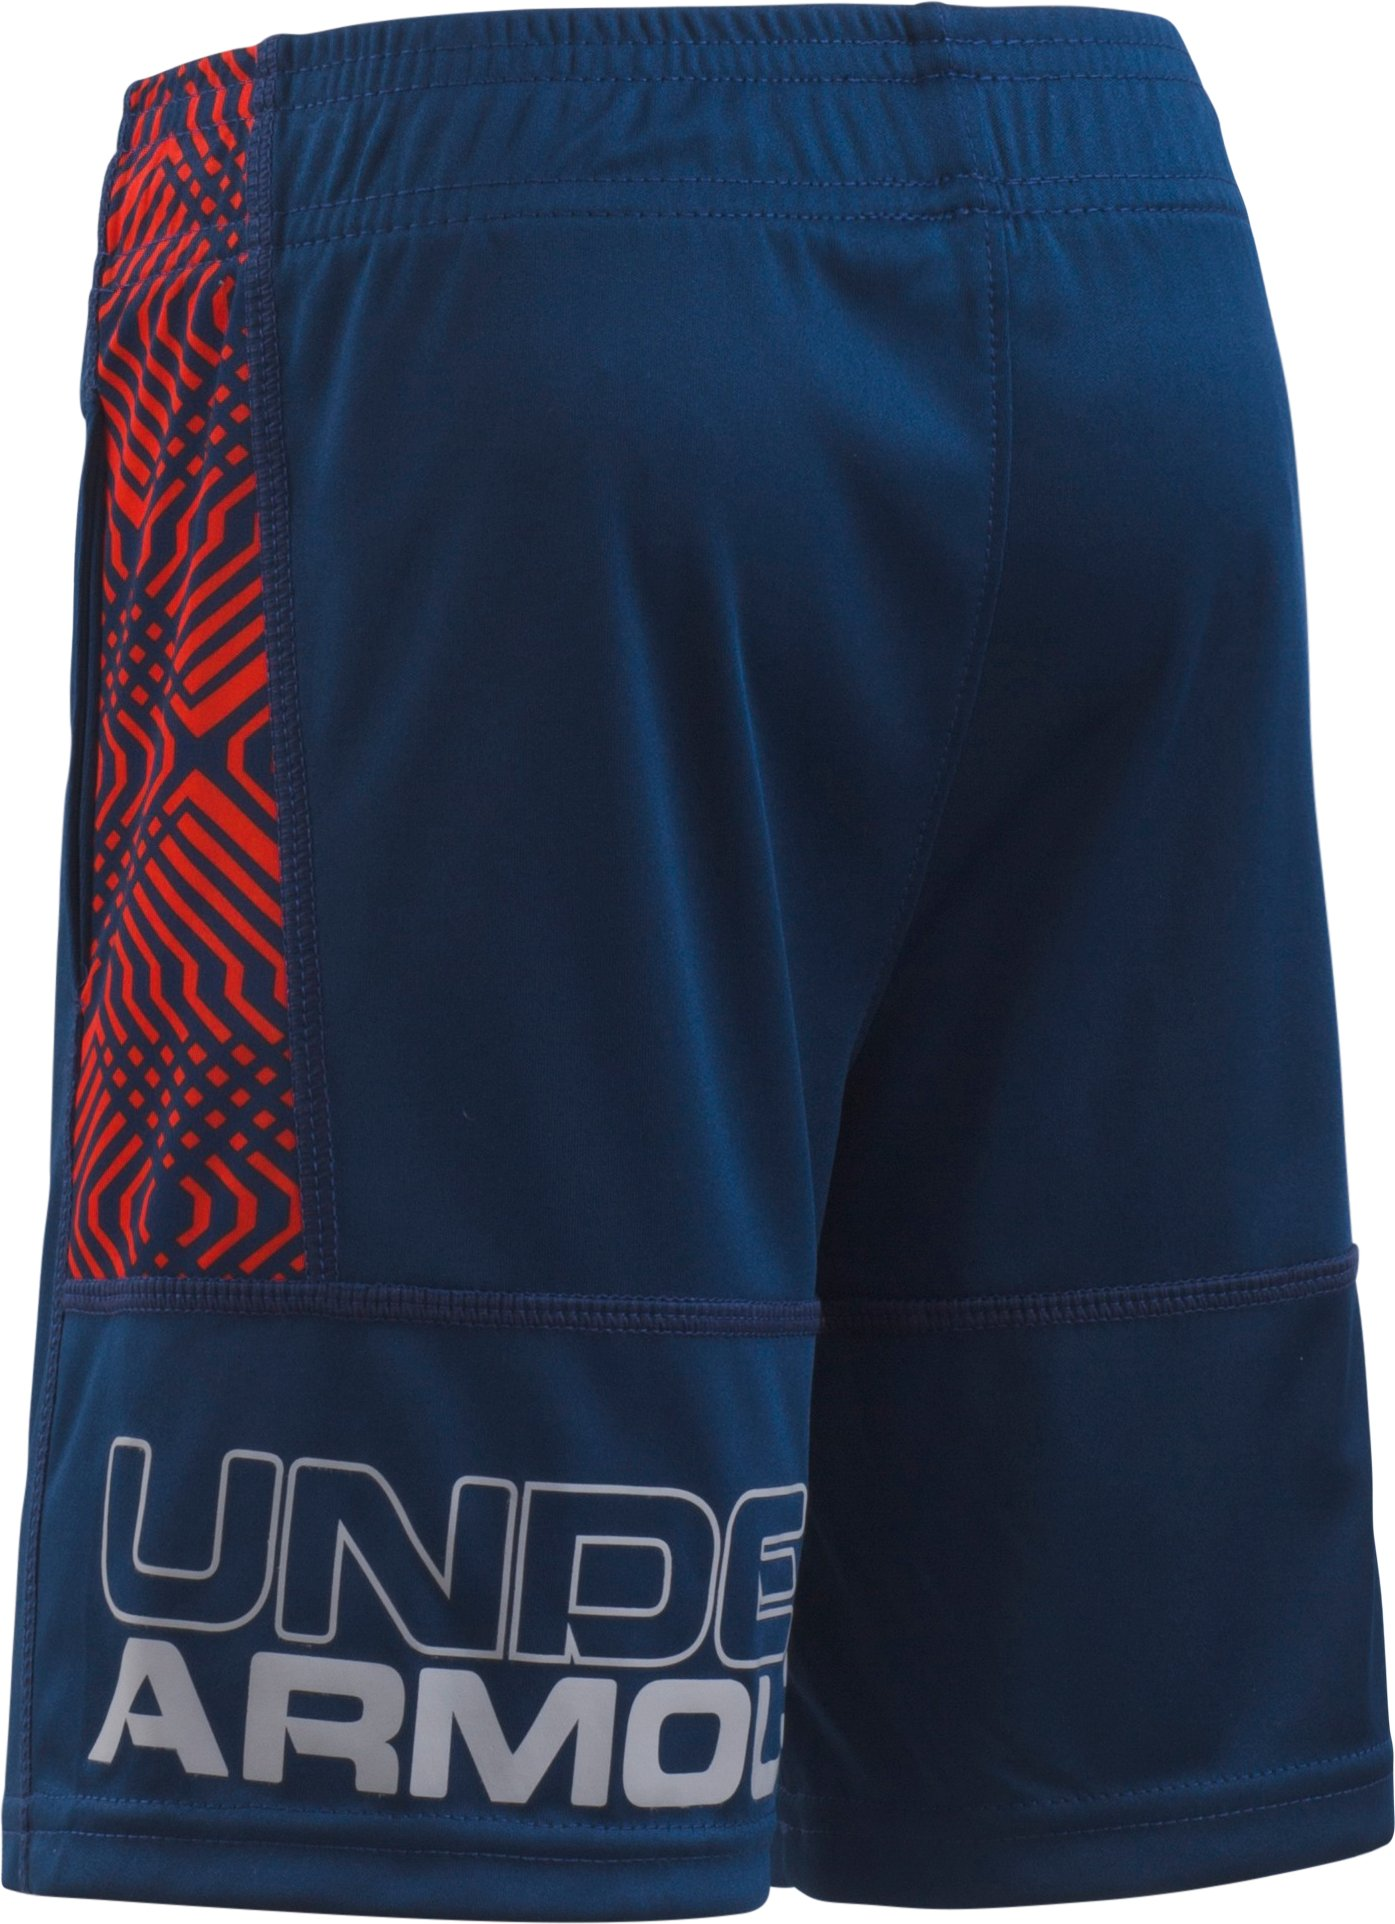 Boys' Toddler UA Midtown Grid Eliminator Shorts, BLACKOUT NAVY,